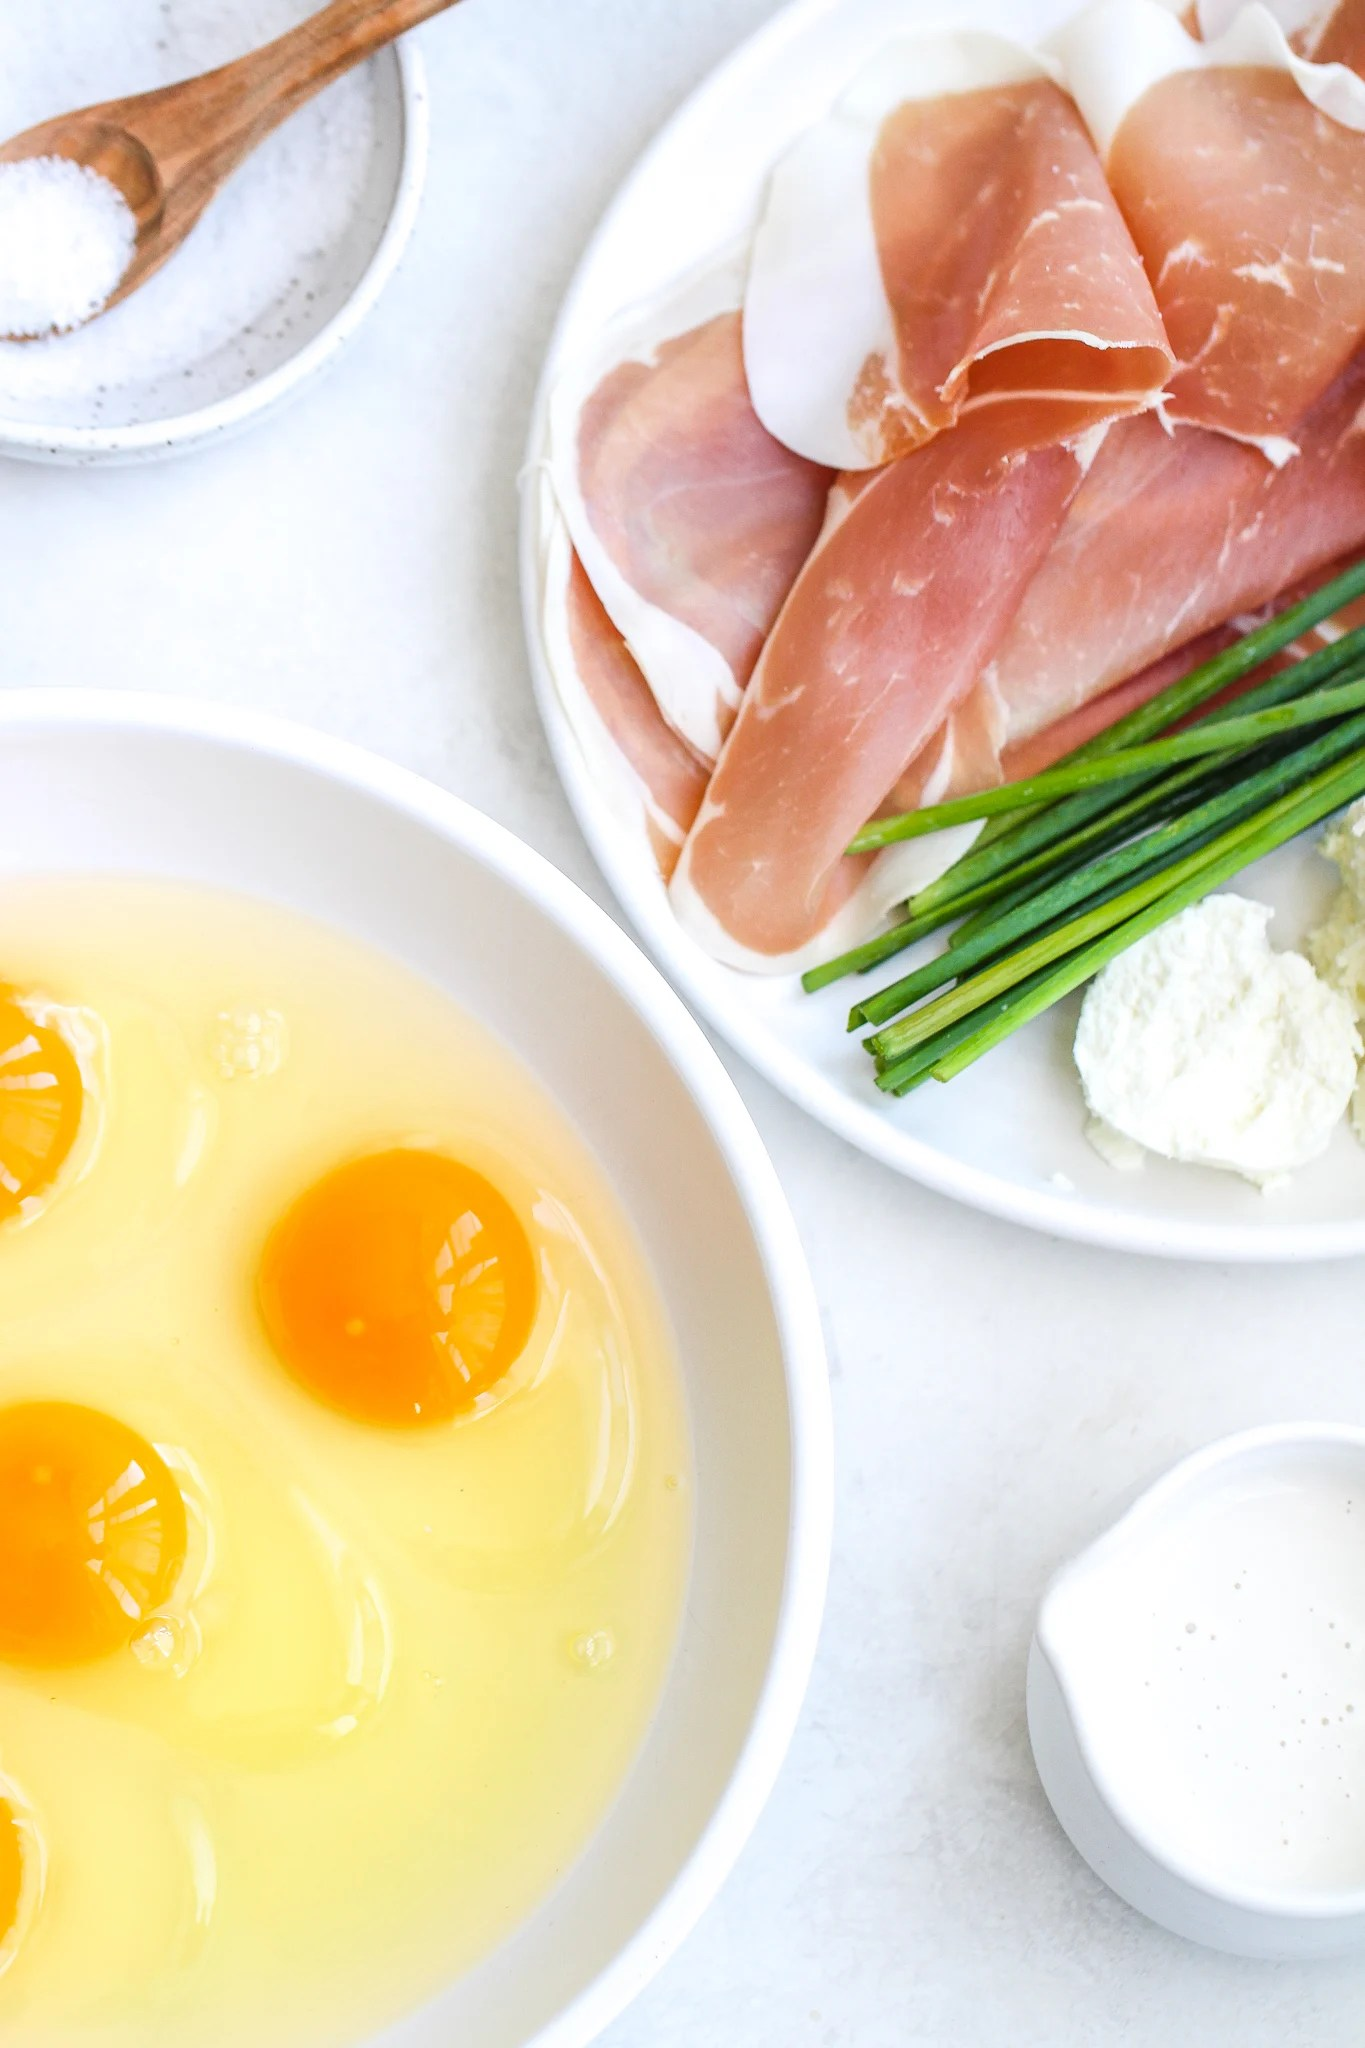 flat lay with raw eggs in a bowl, a ceramic cup with cream. Prosciutto, chives and goat cheese on a white ceramic plate and a sat dish with a wooden serving spoon